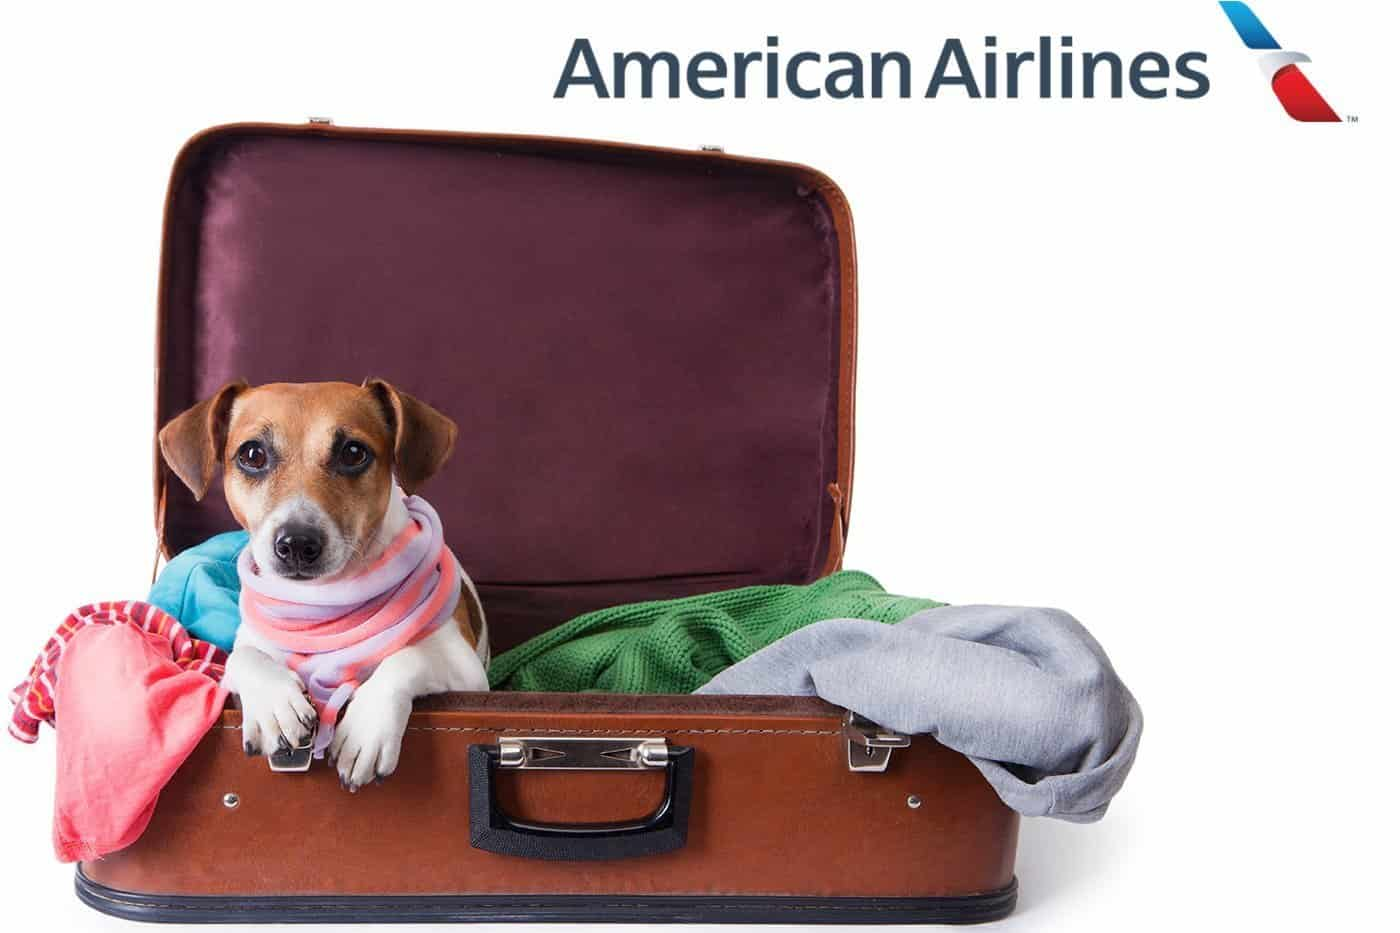 Small dog in a suitcase. American Airlines logo at top of image.